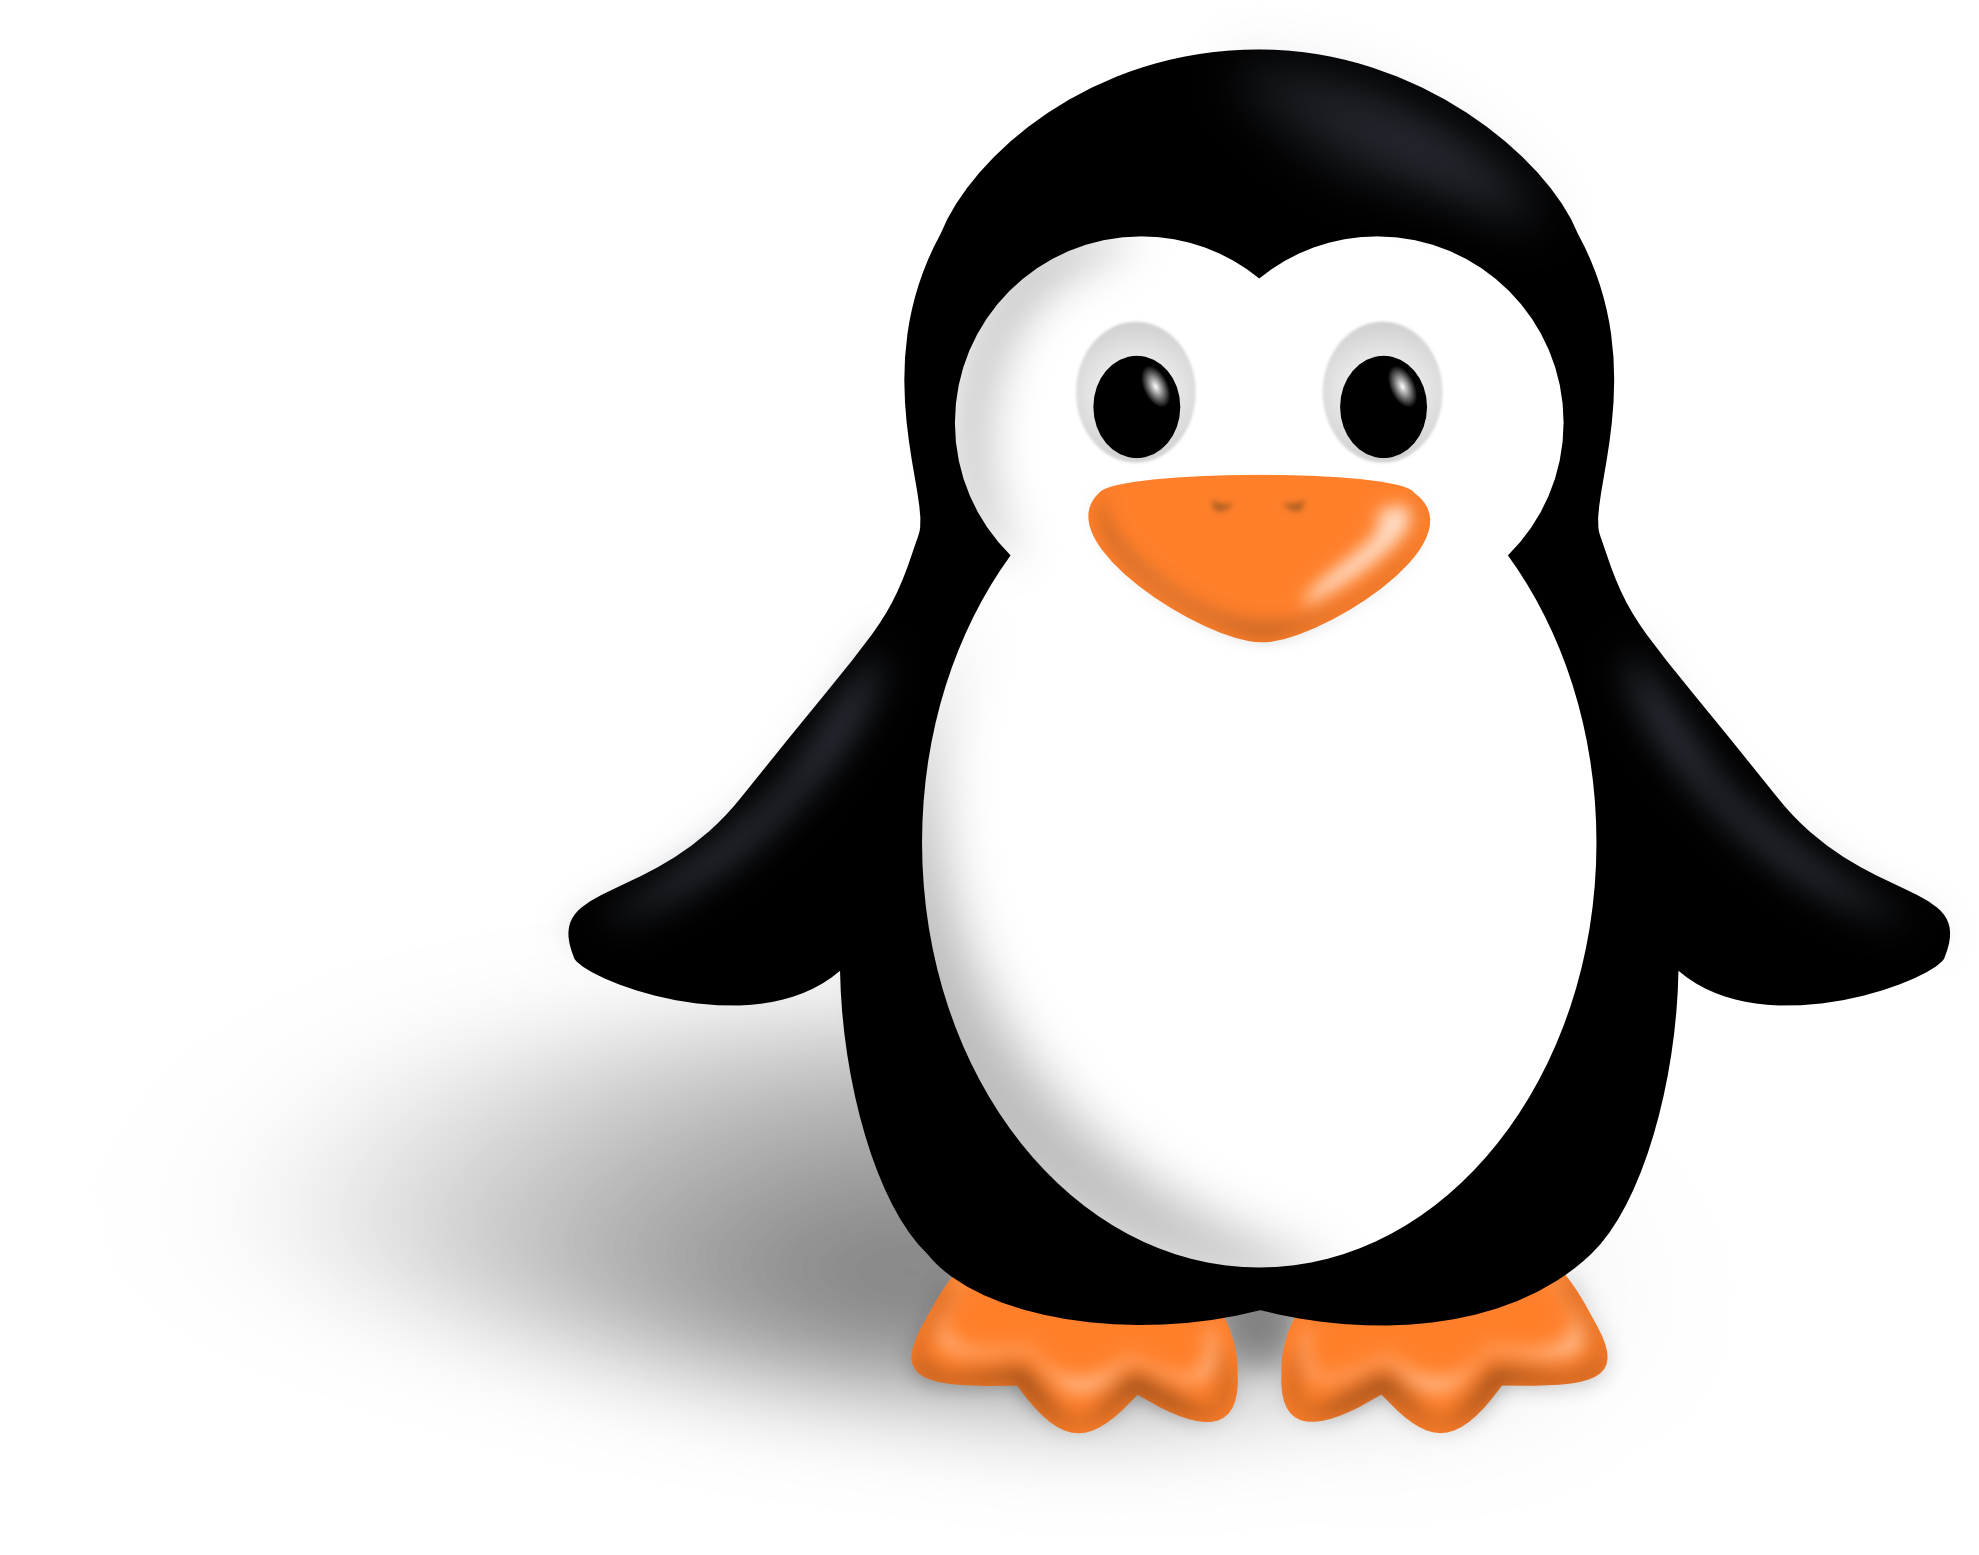 Penguin png transparent background